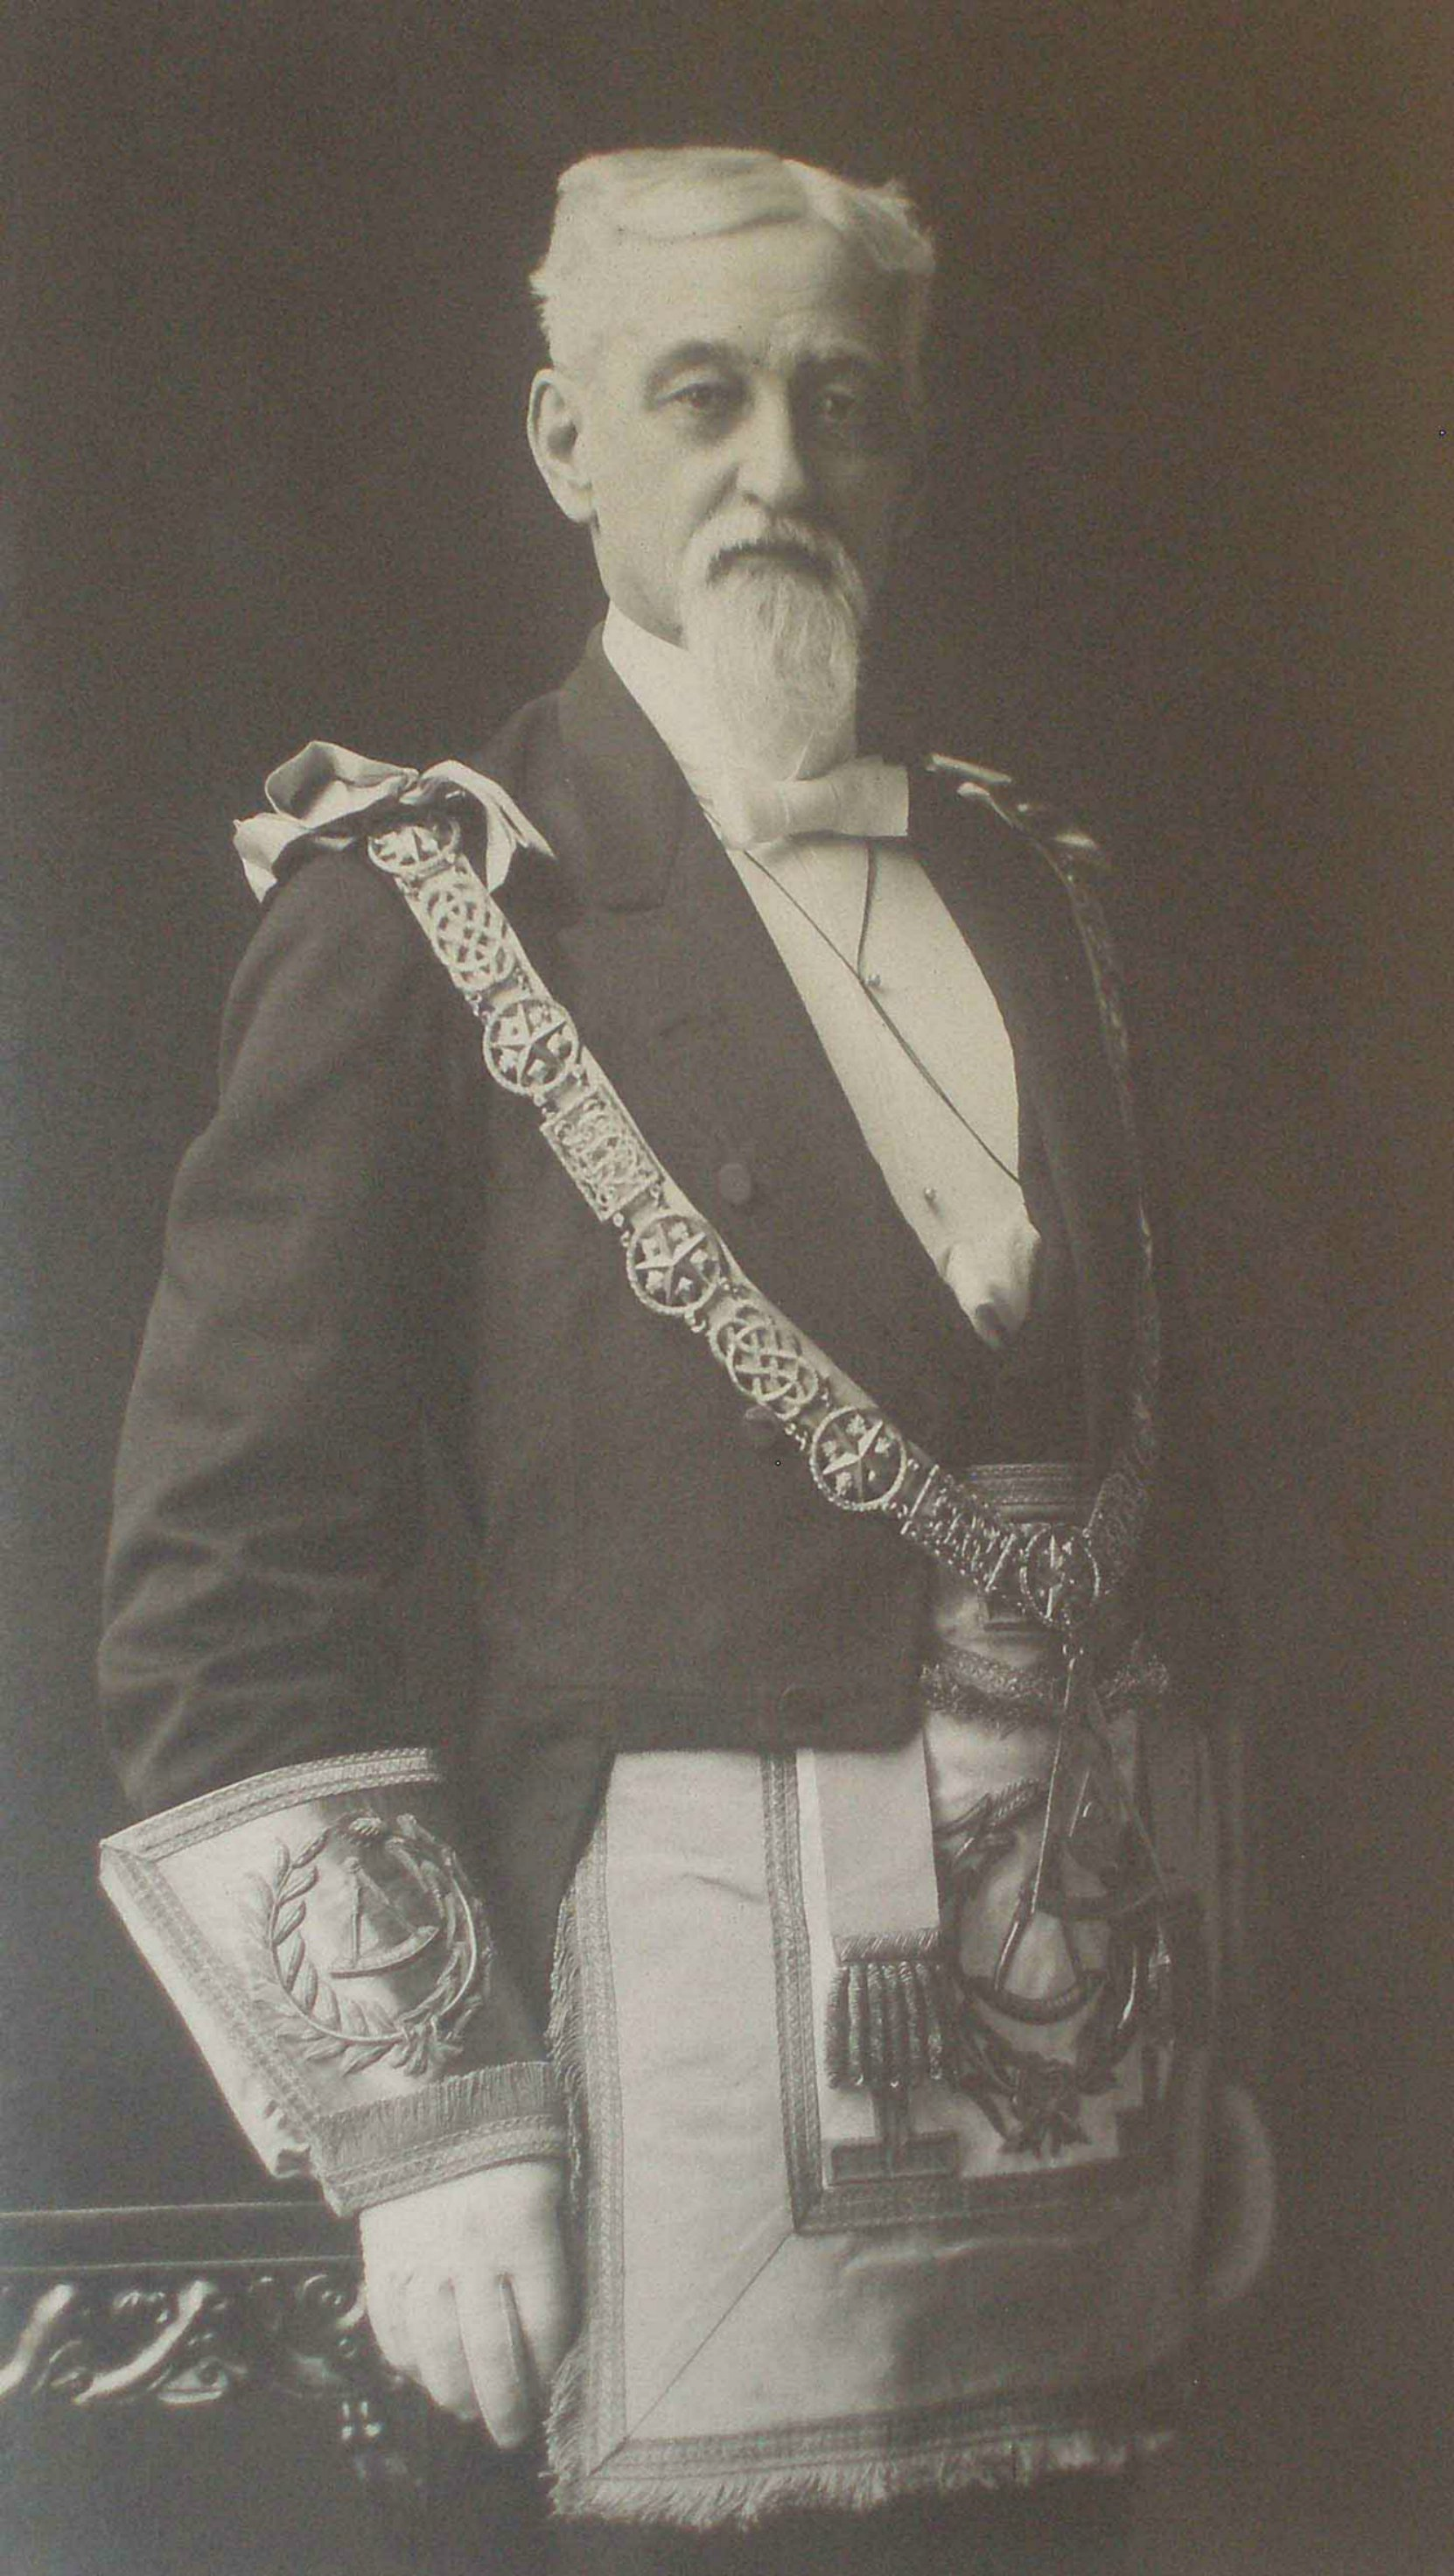 Robert Burns McMicking (1843-1915) as Grand Master of British Columbia, 1894-95 (Photo courtesy of Grand Lodge of B.C. & Yukon)